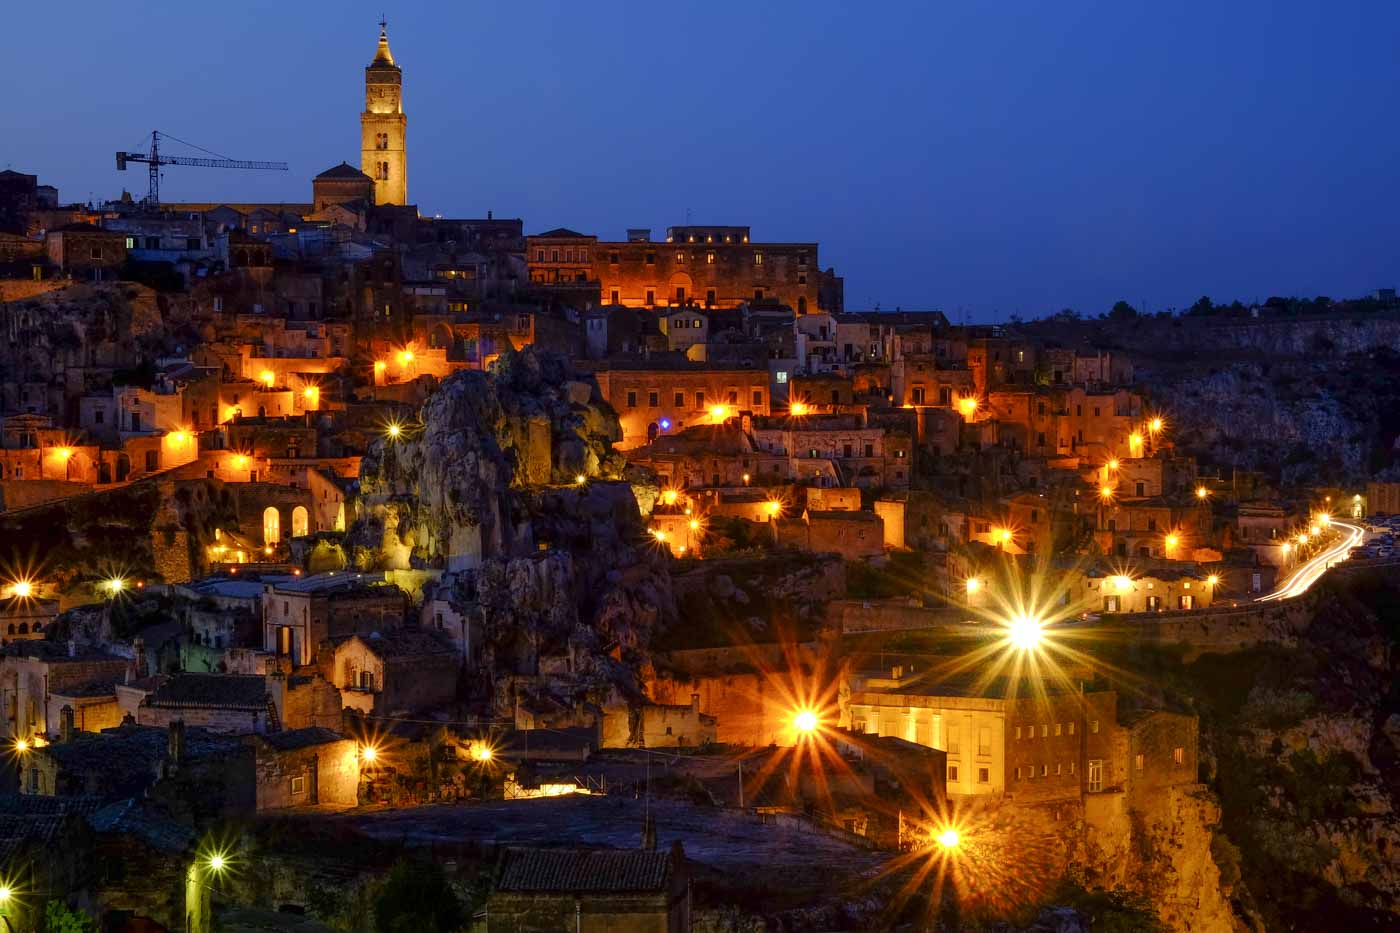 The Sassi of Matera: From a Lost City to the Capital of Culture